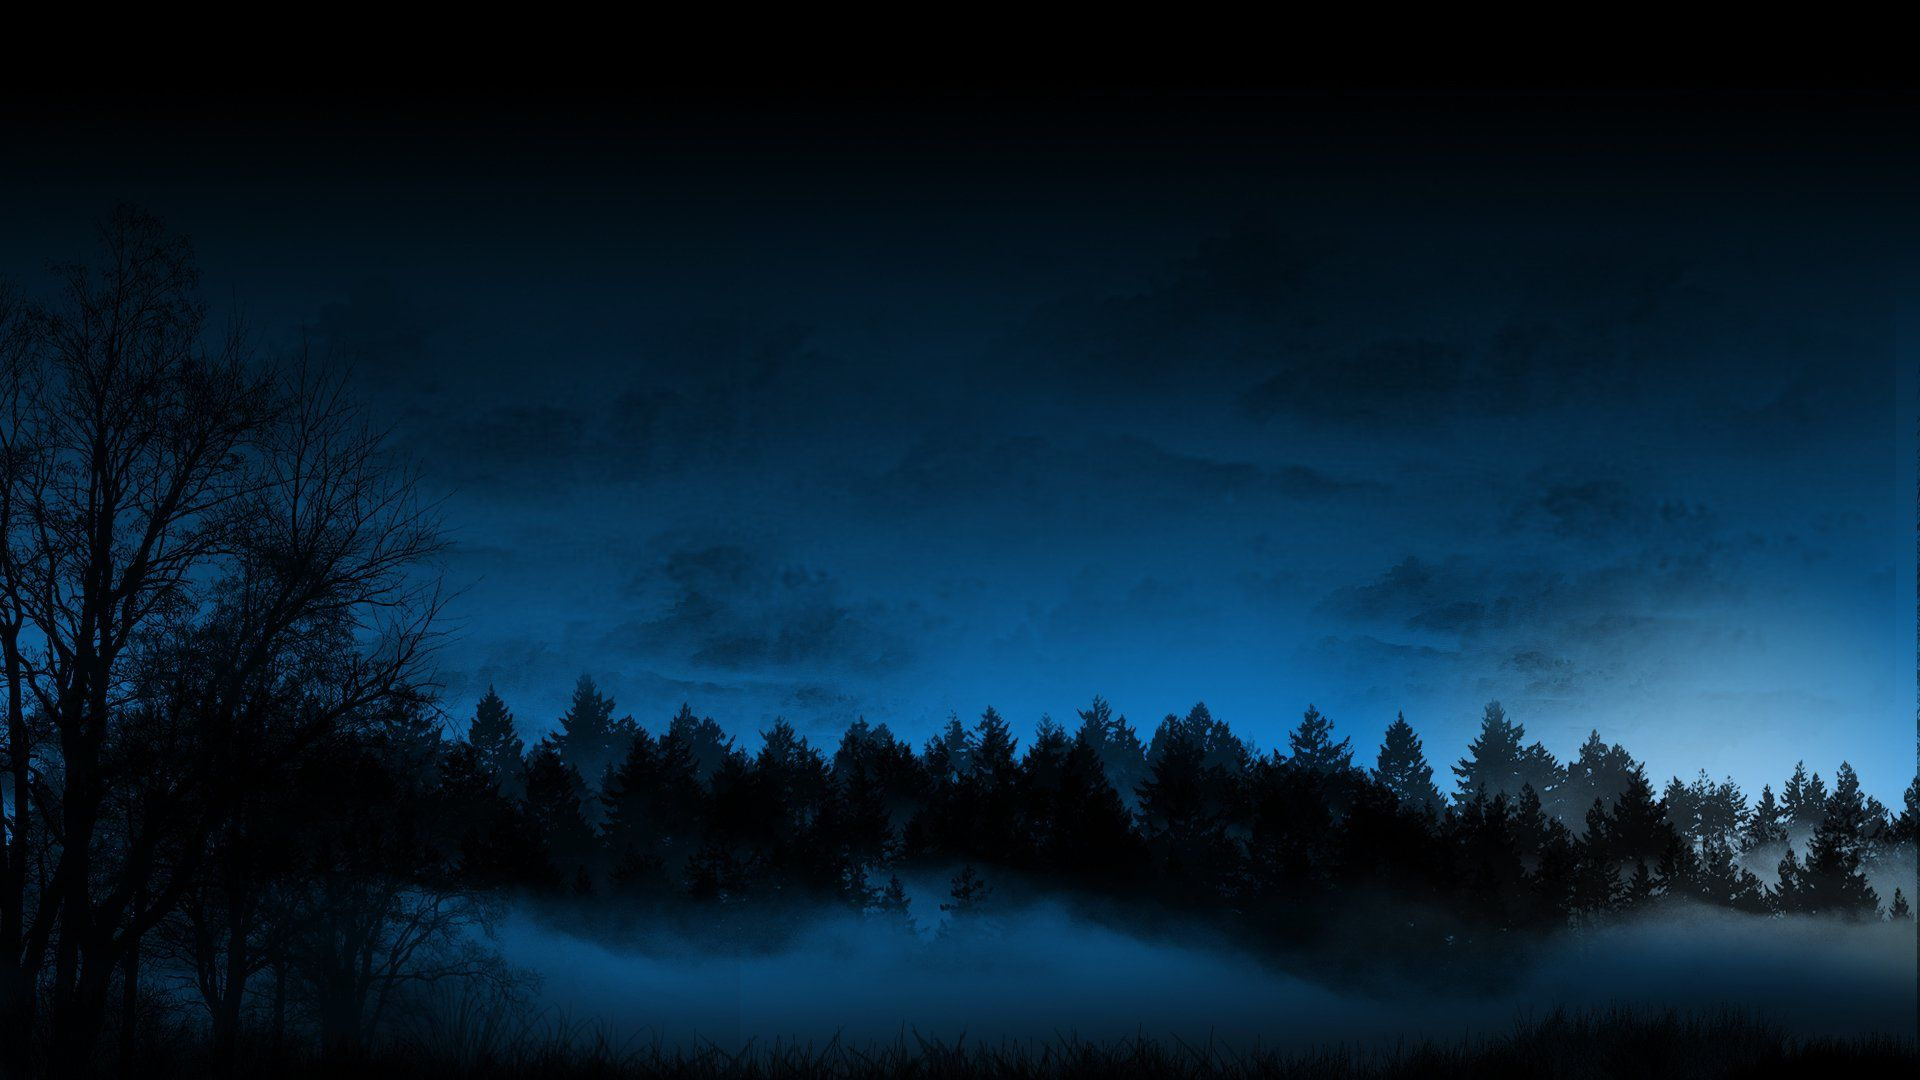 Night Forest Wallpapers Top Free Night Forest Backgrounds